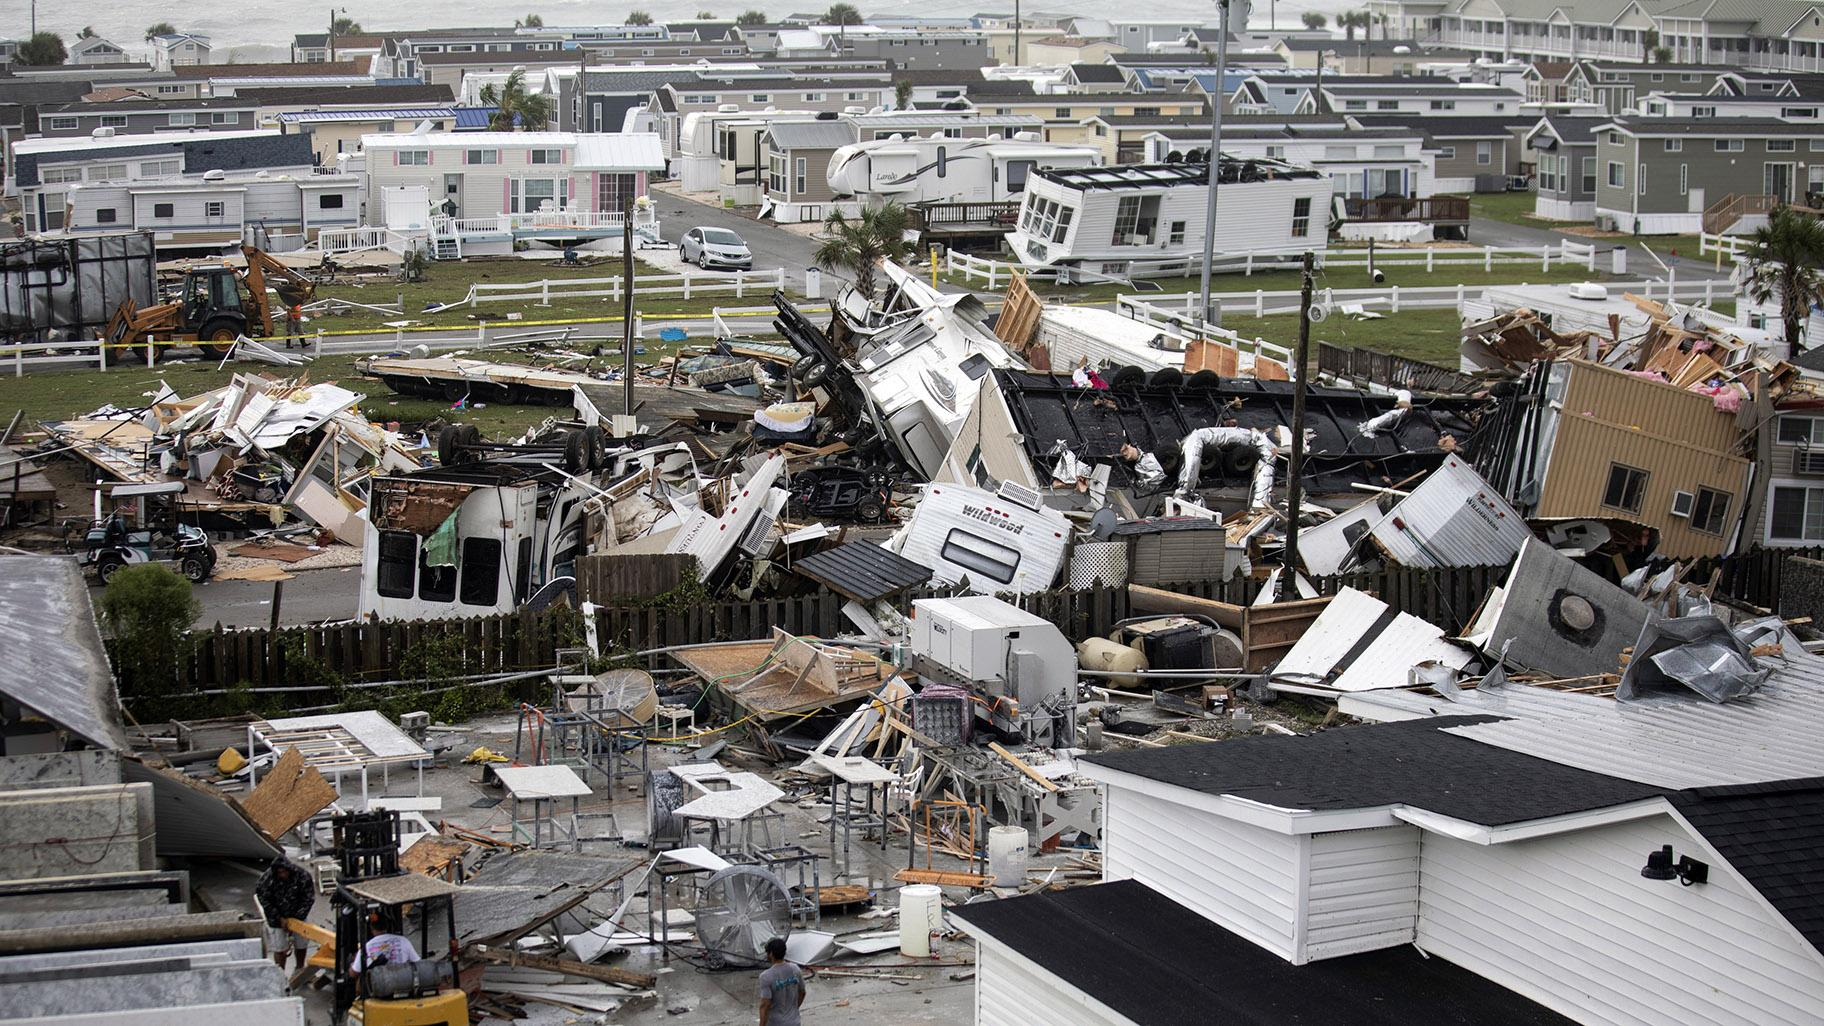 Mobile homes are upended and debris is strewn about at the Holiday Trav-l Park, Thursday, Sept. 5, 2019, in Emerald Isle, N.C, after a possible tornado generated by Hurricane Dorian struck the area. (Julia Wall / The News & Observer via AP)